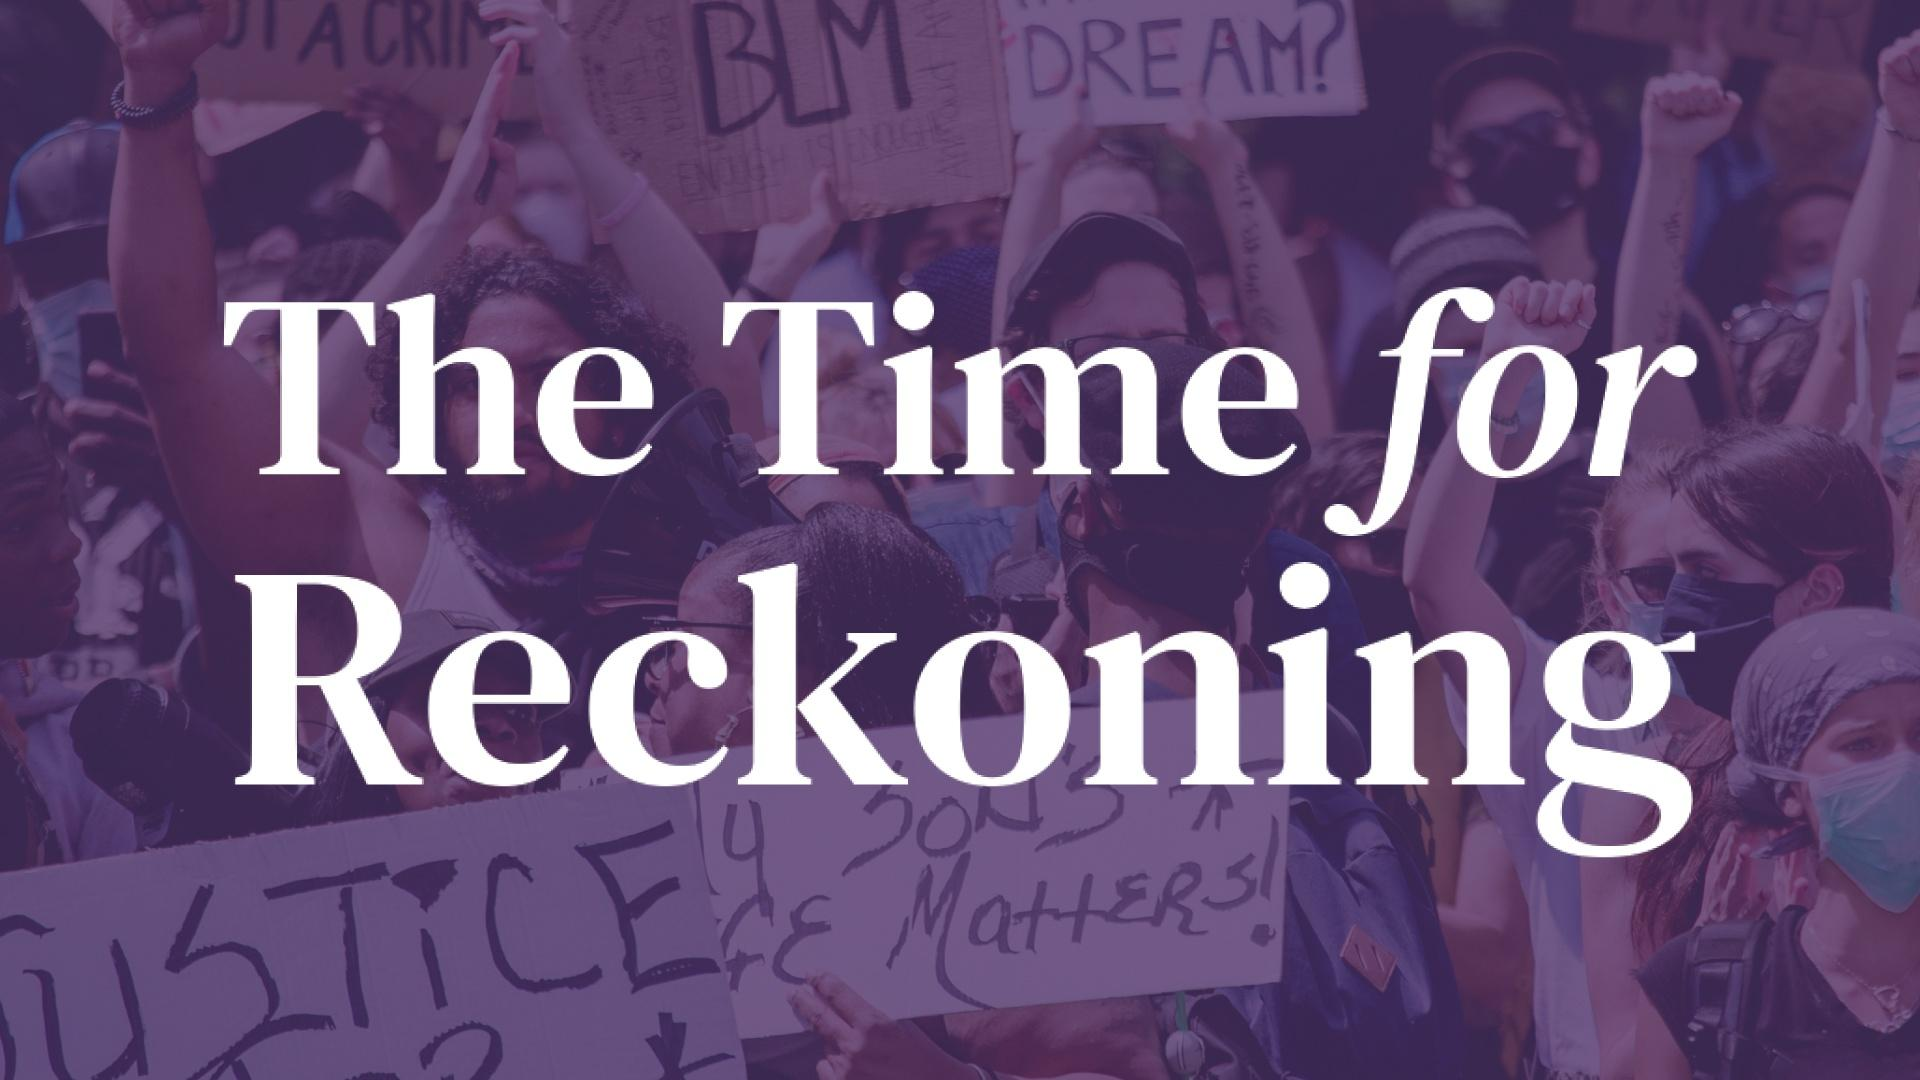 The Time for Reckoning Logo on an image of Black Lives Matter Protestors with a purple transparent overlay